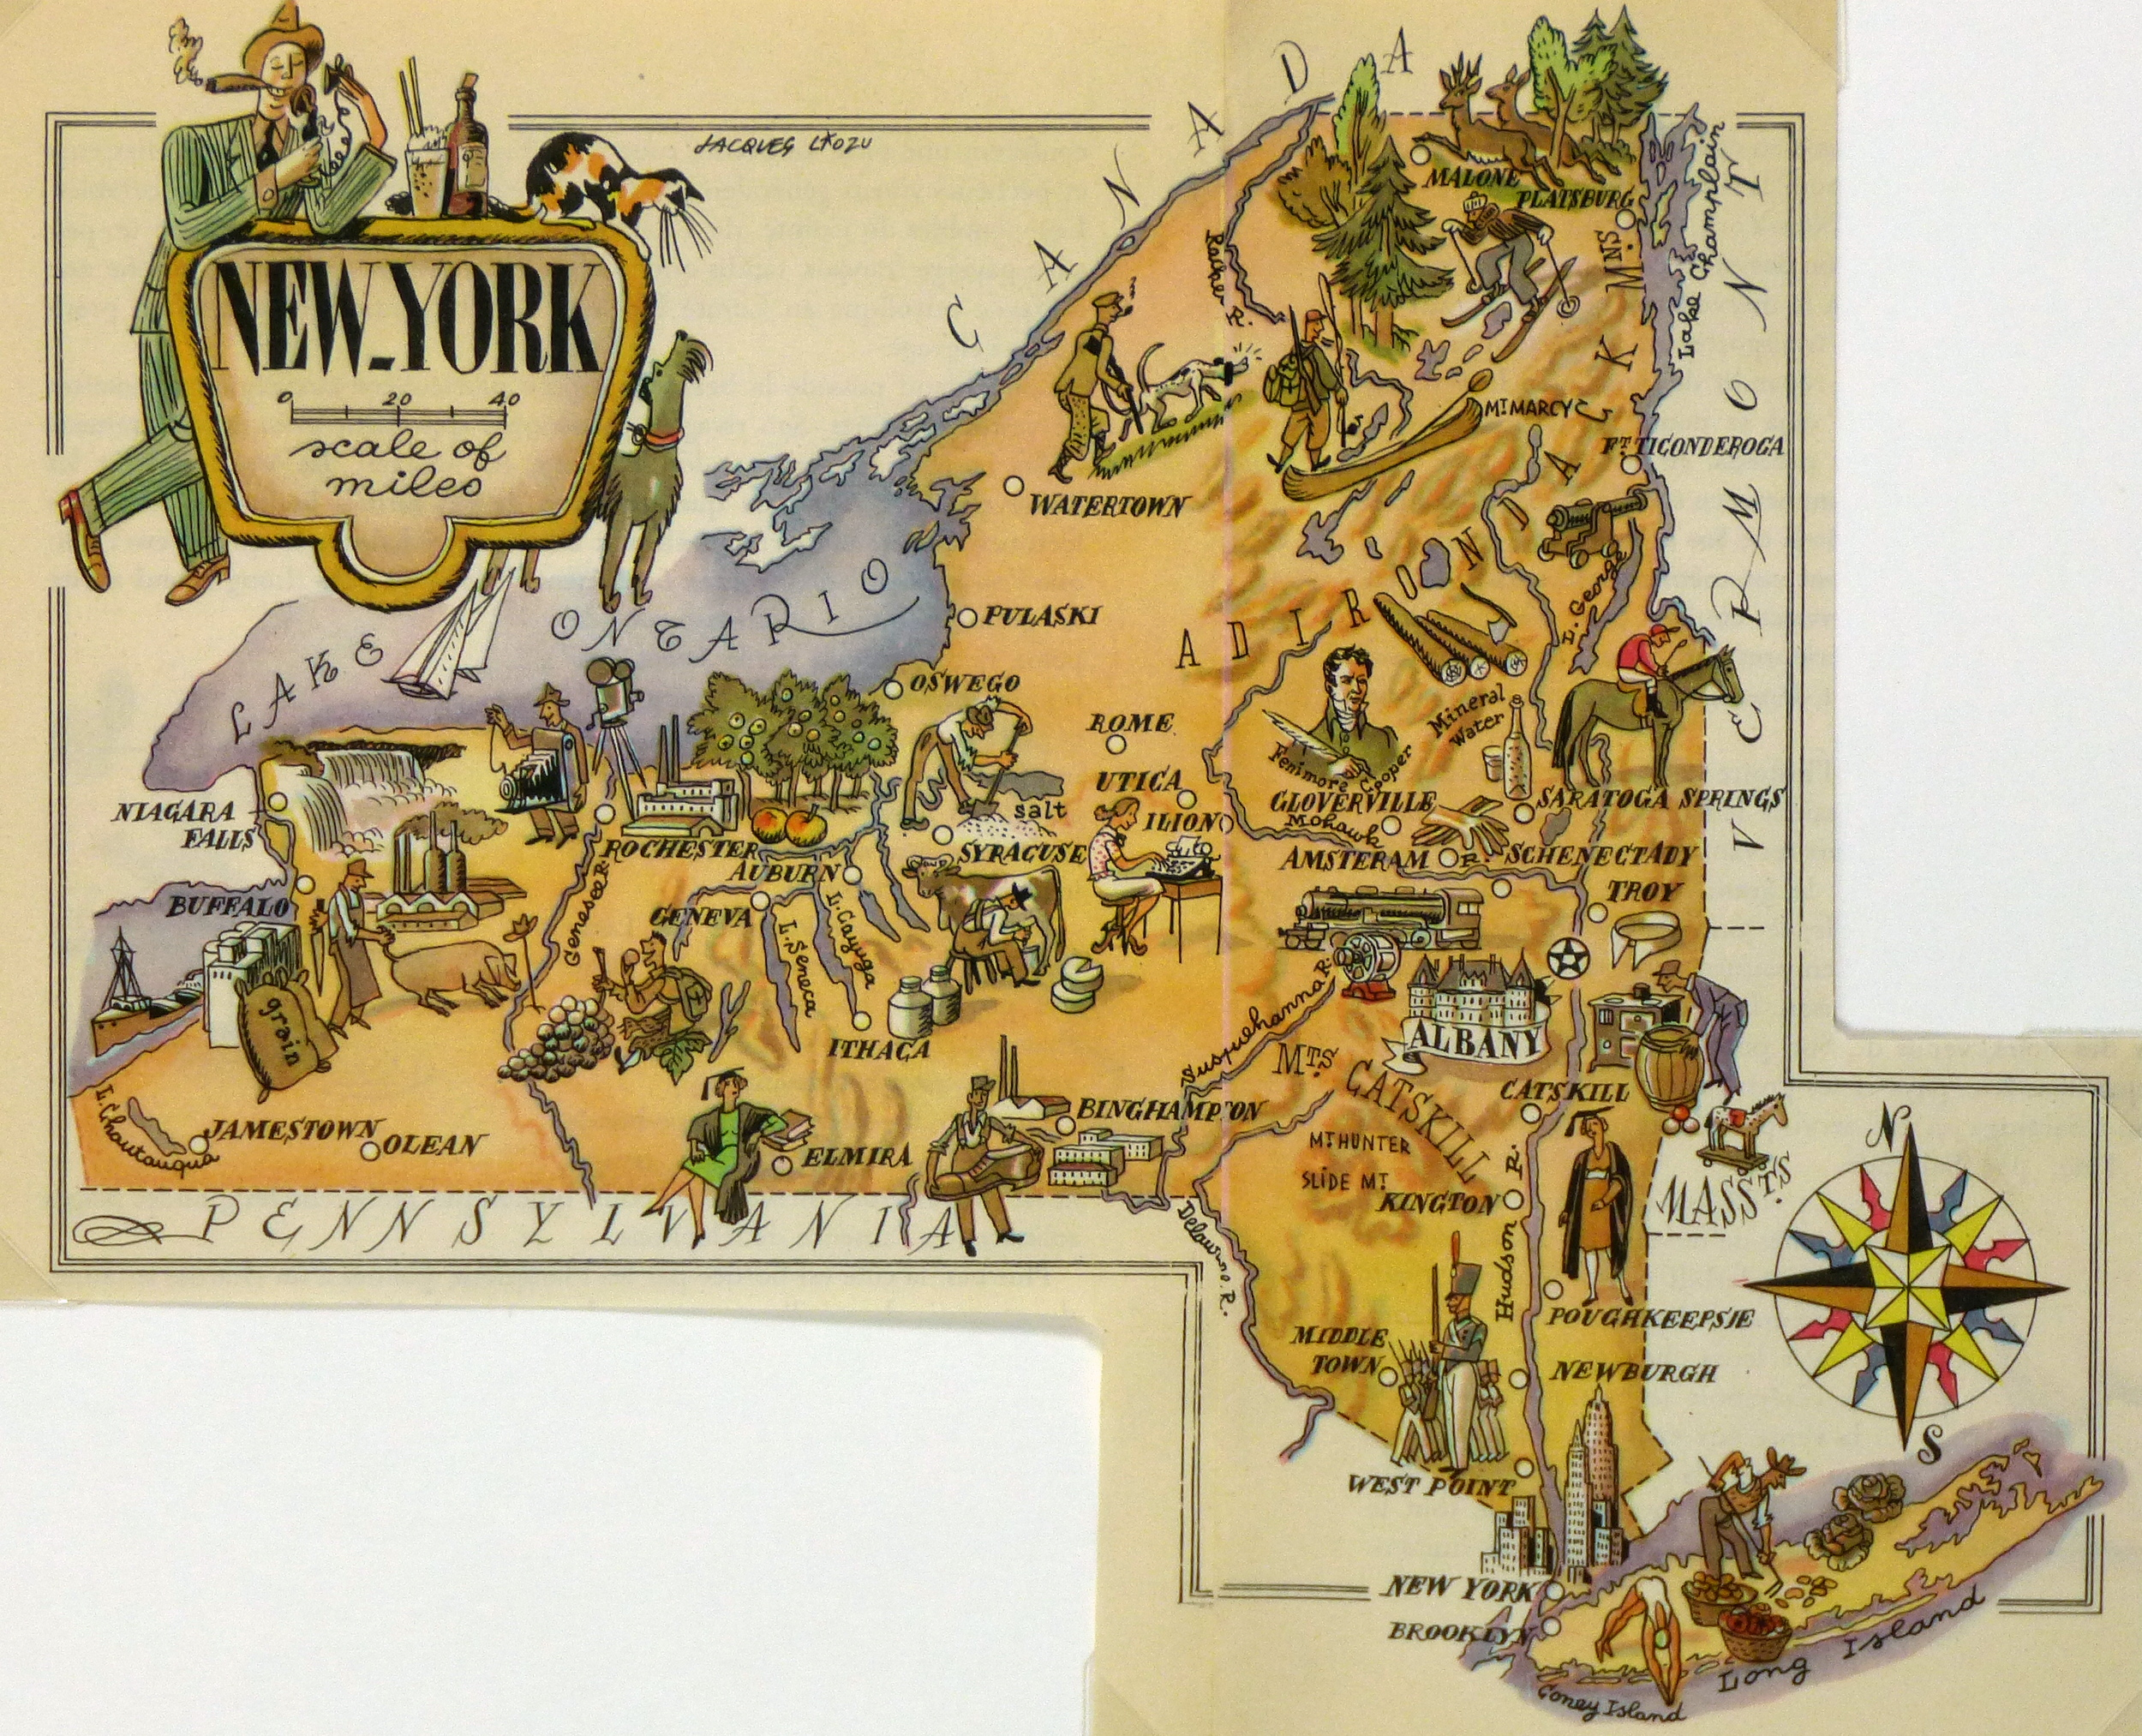 New York Pictorial Map, 1946-main-6278K